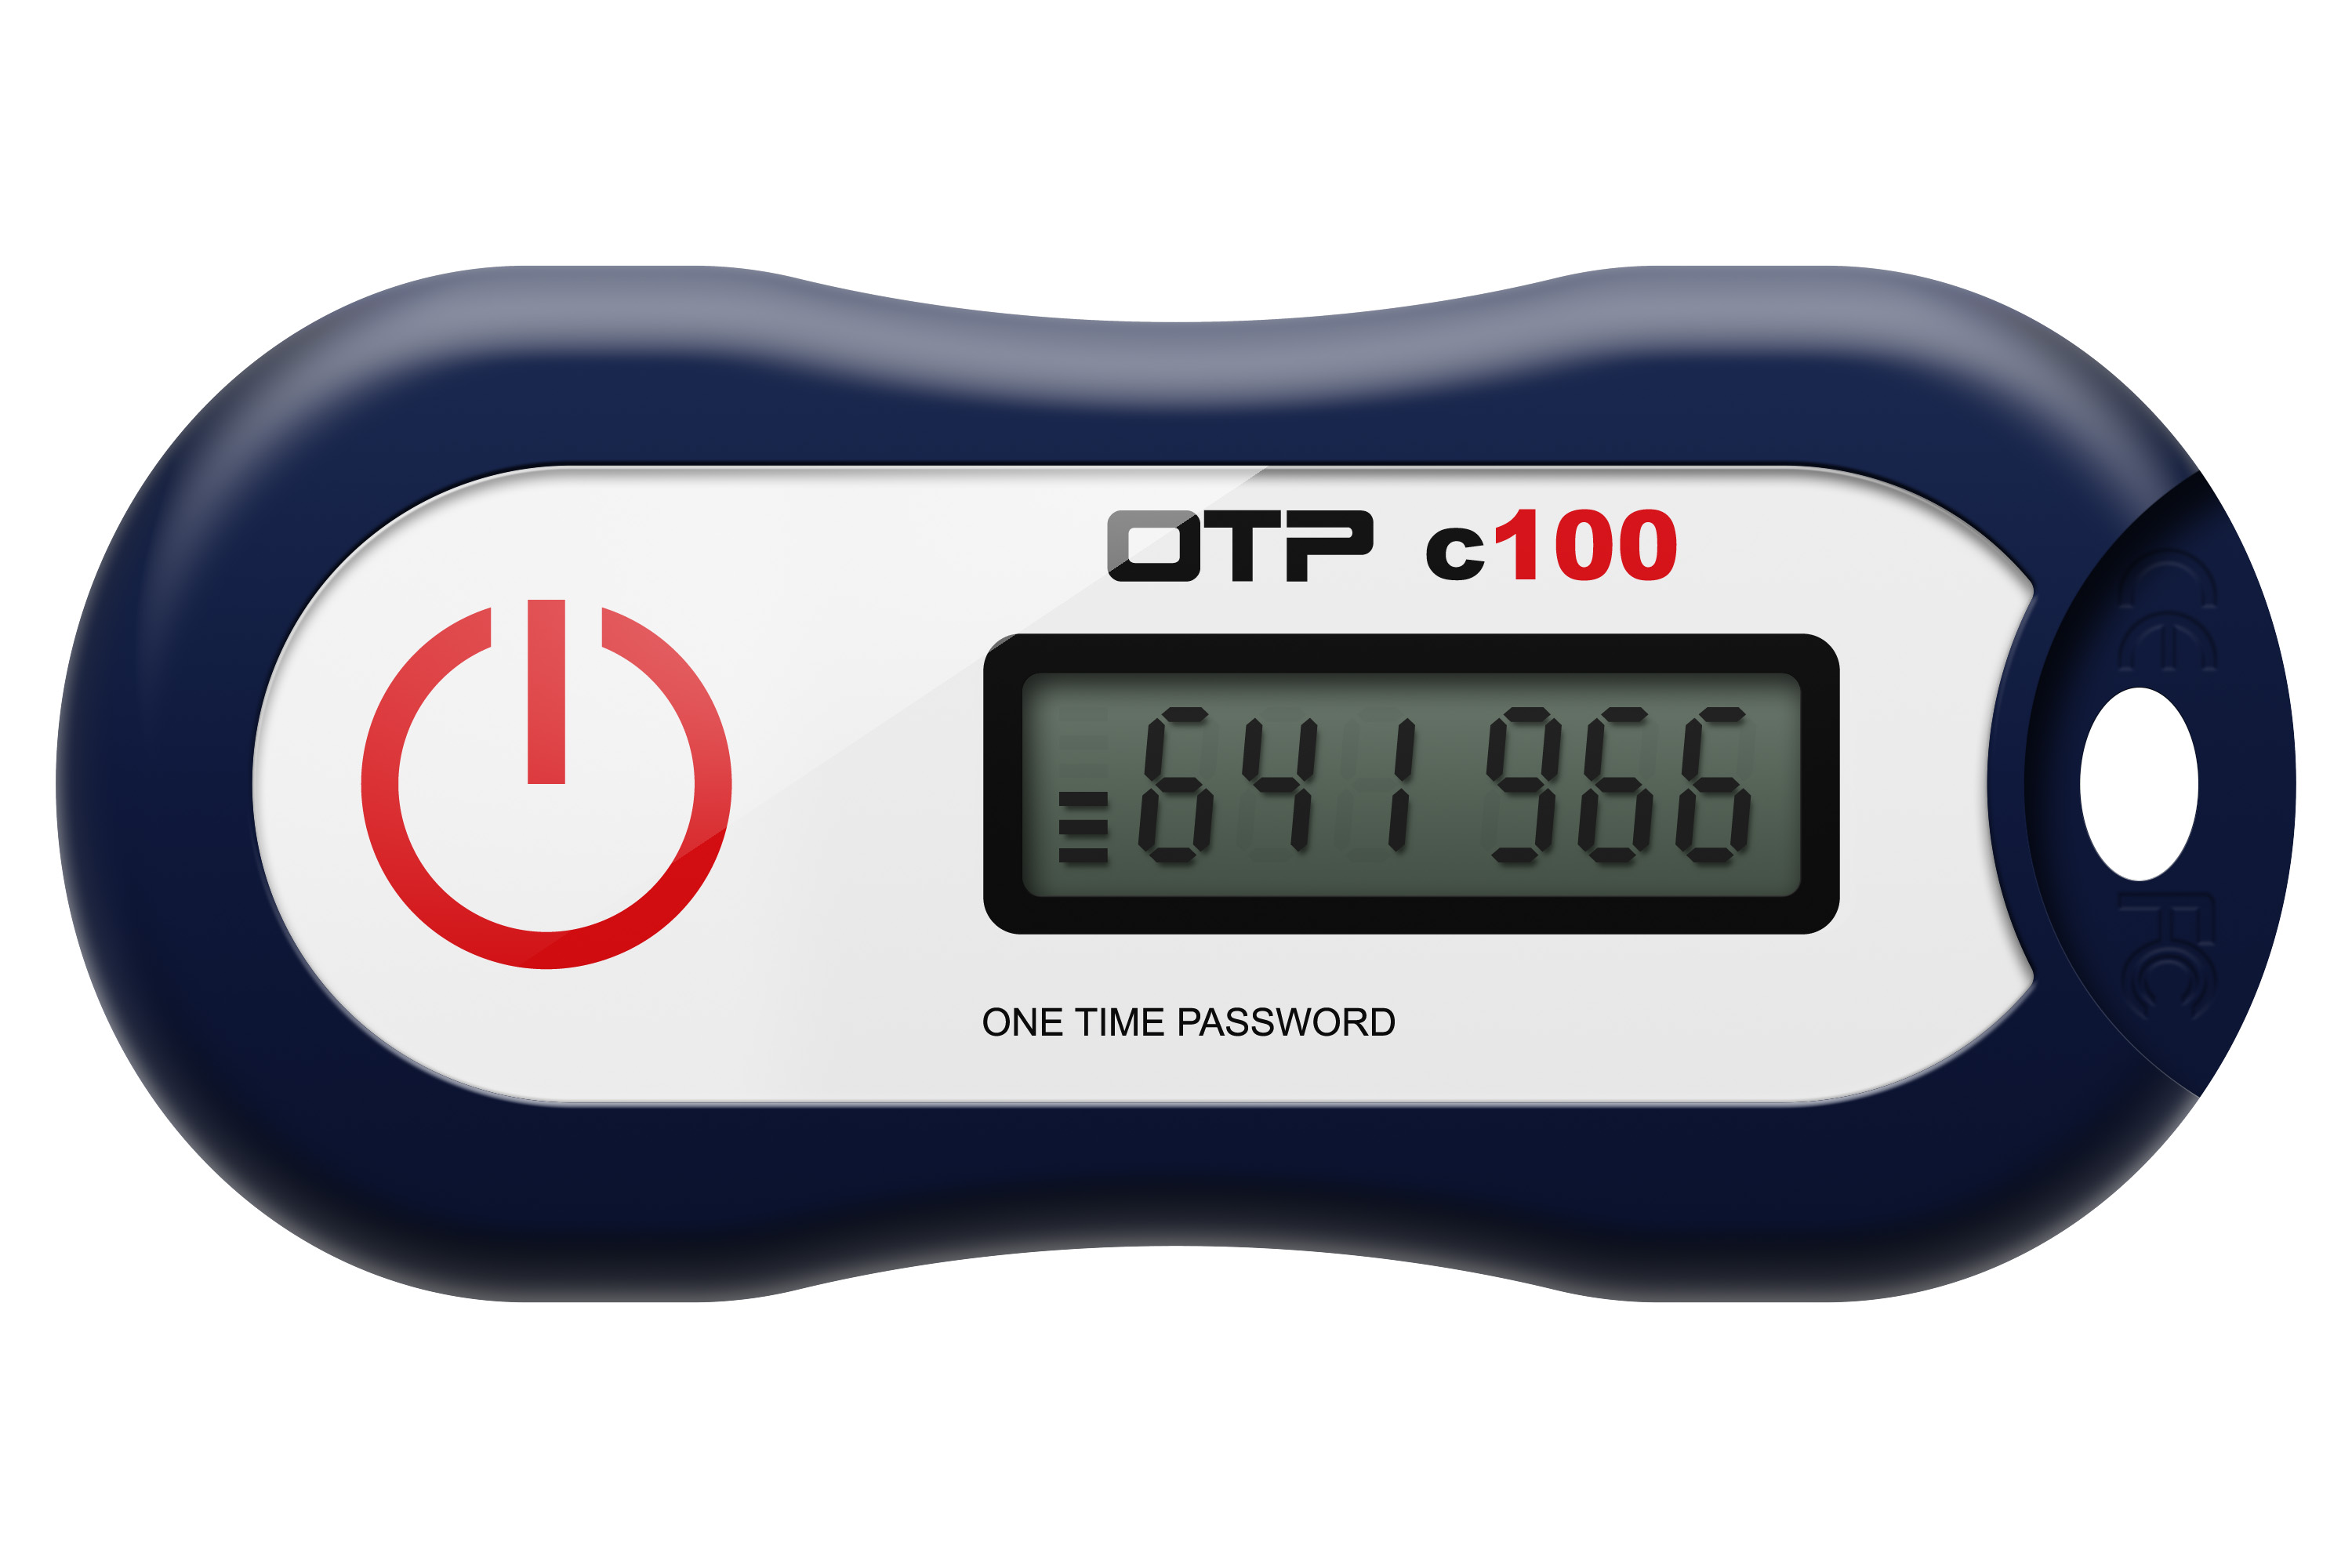 One Time Password/OTP c100